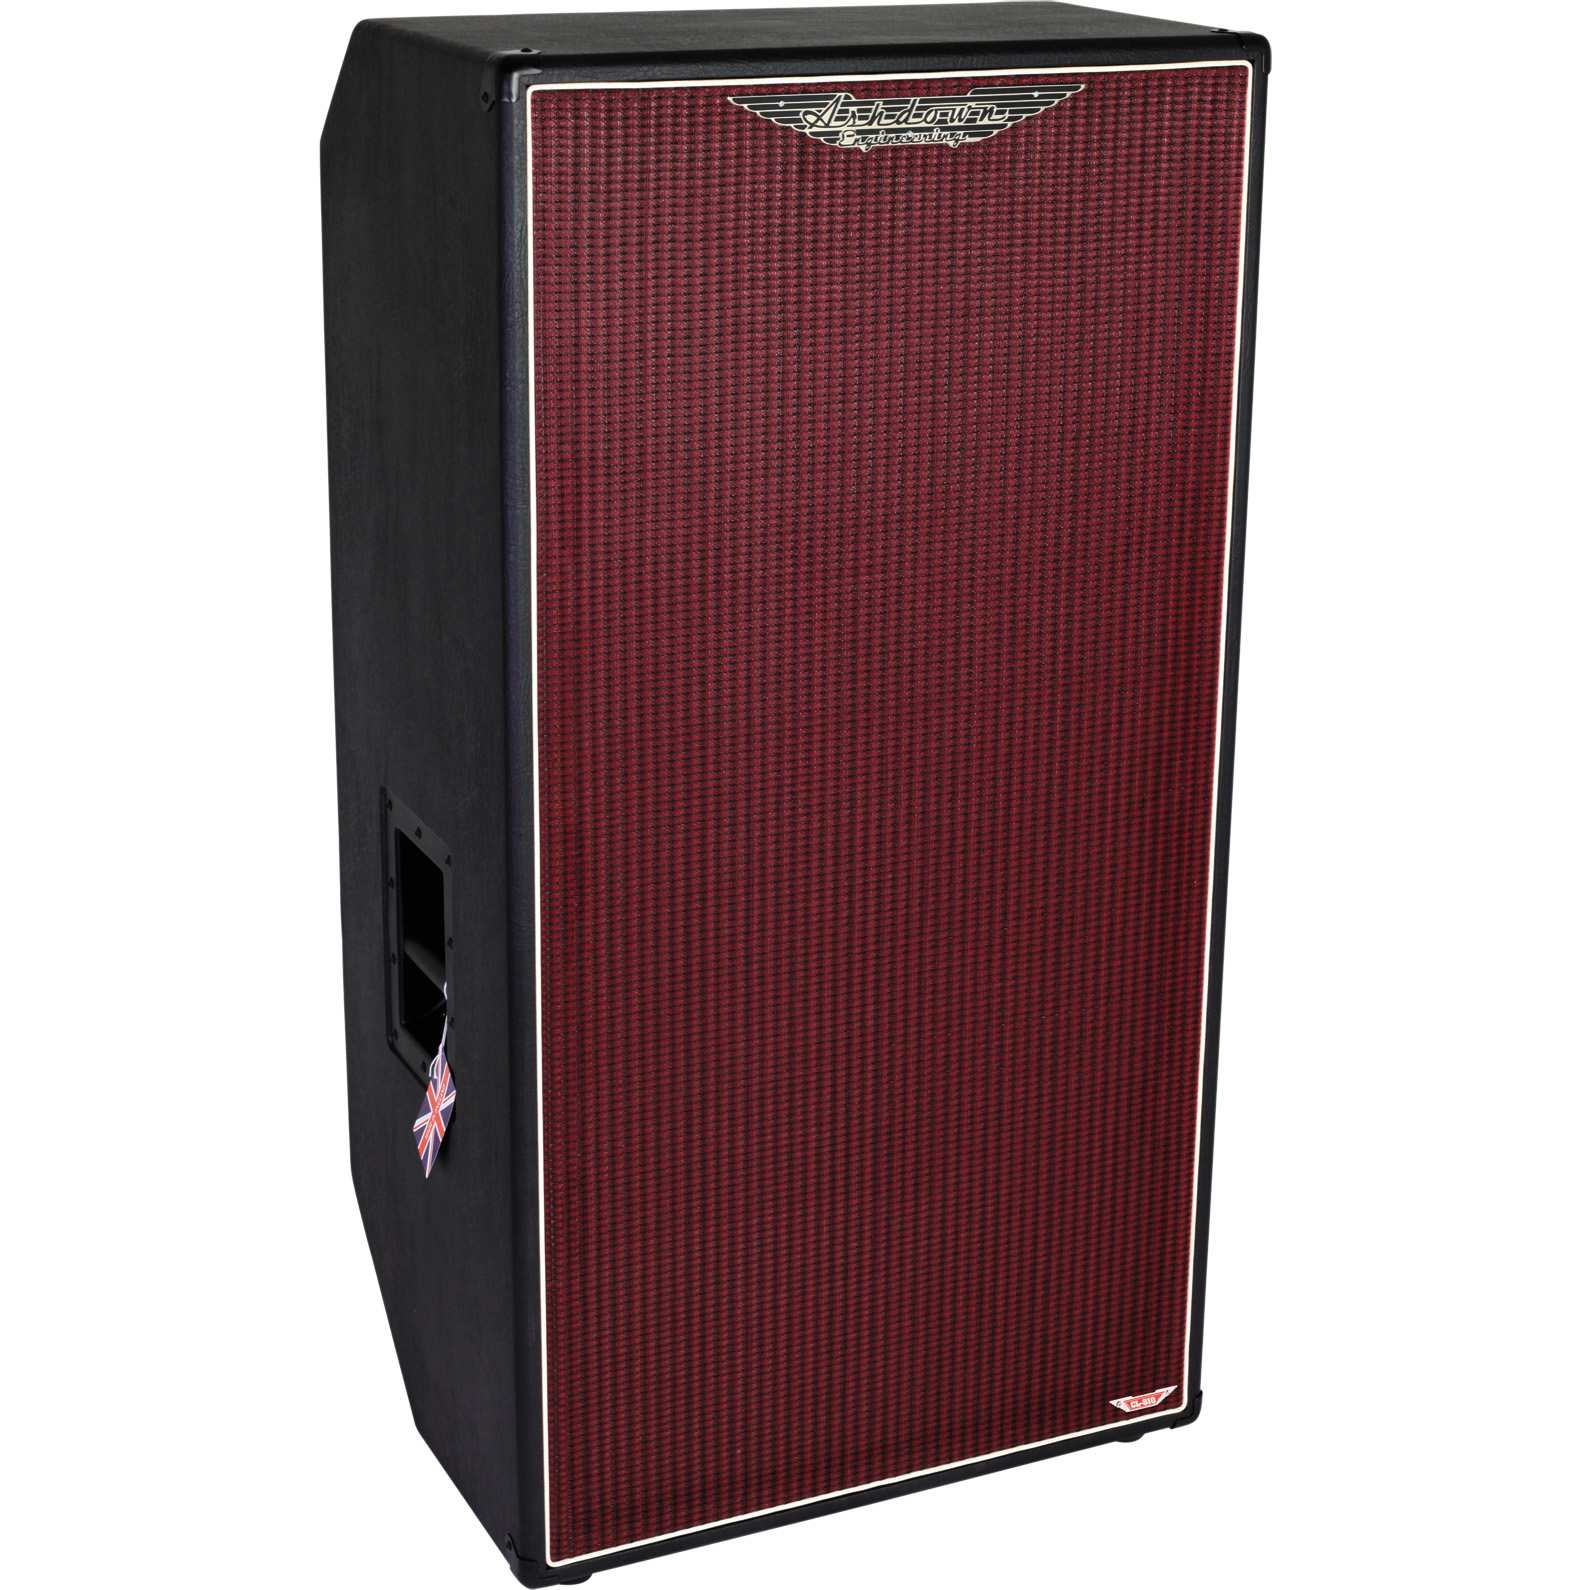 Ashdown CL-810 8X10 Inch Cabinet For Bass Guitar